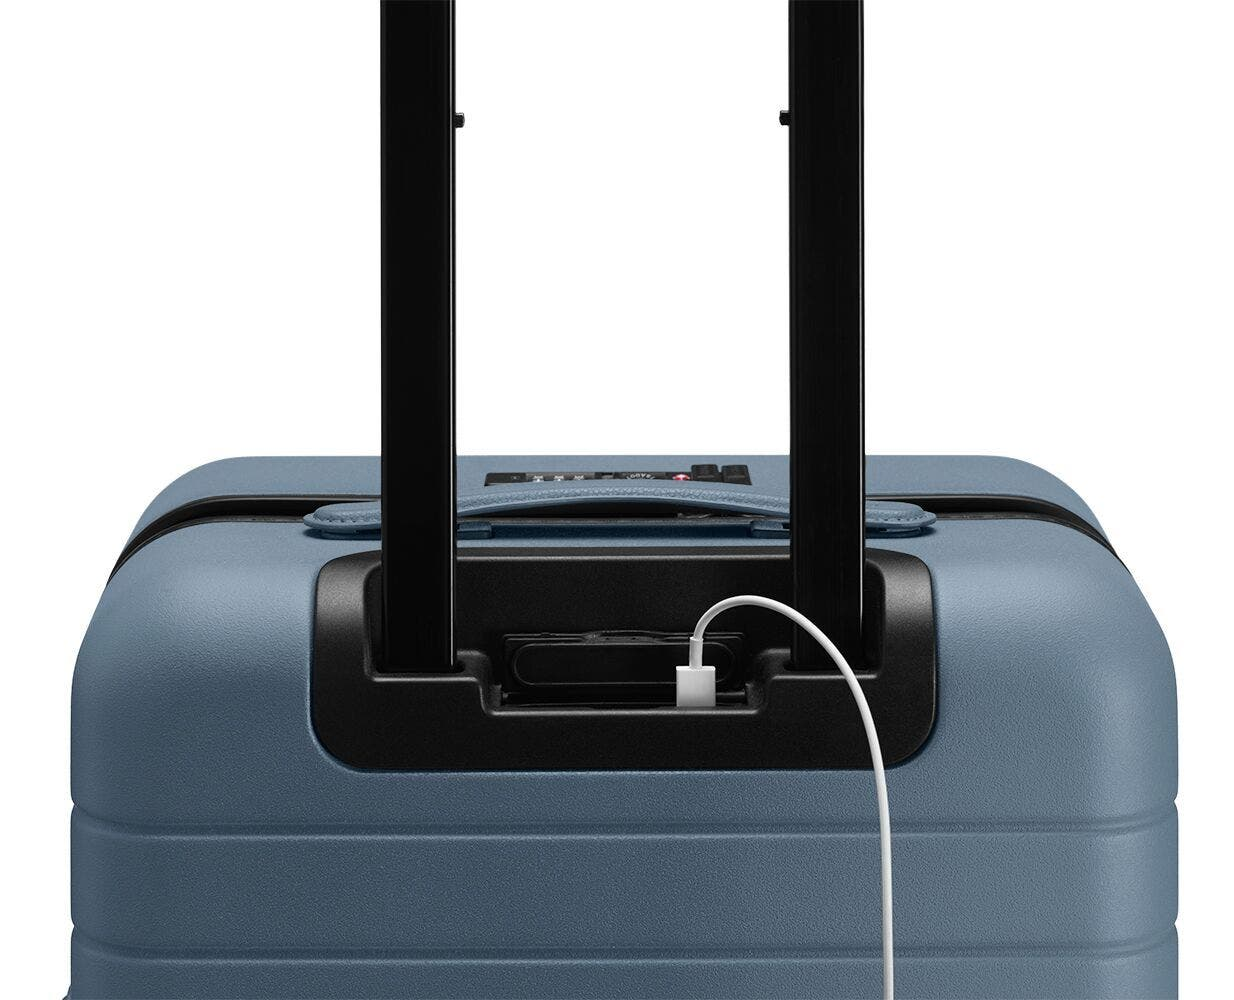 Video showing a finger pressing the battery to eject it from The Carry-On with Pocket in Coast